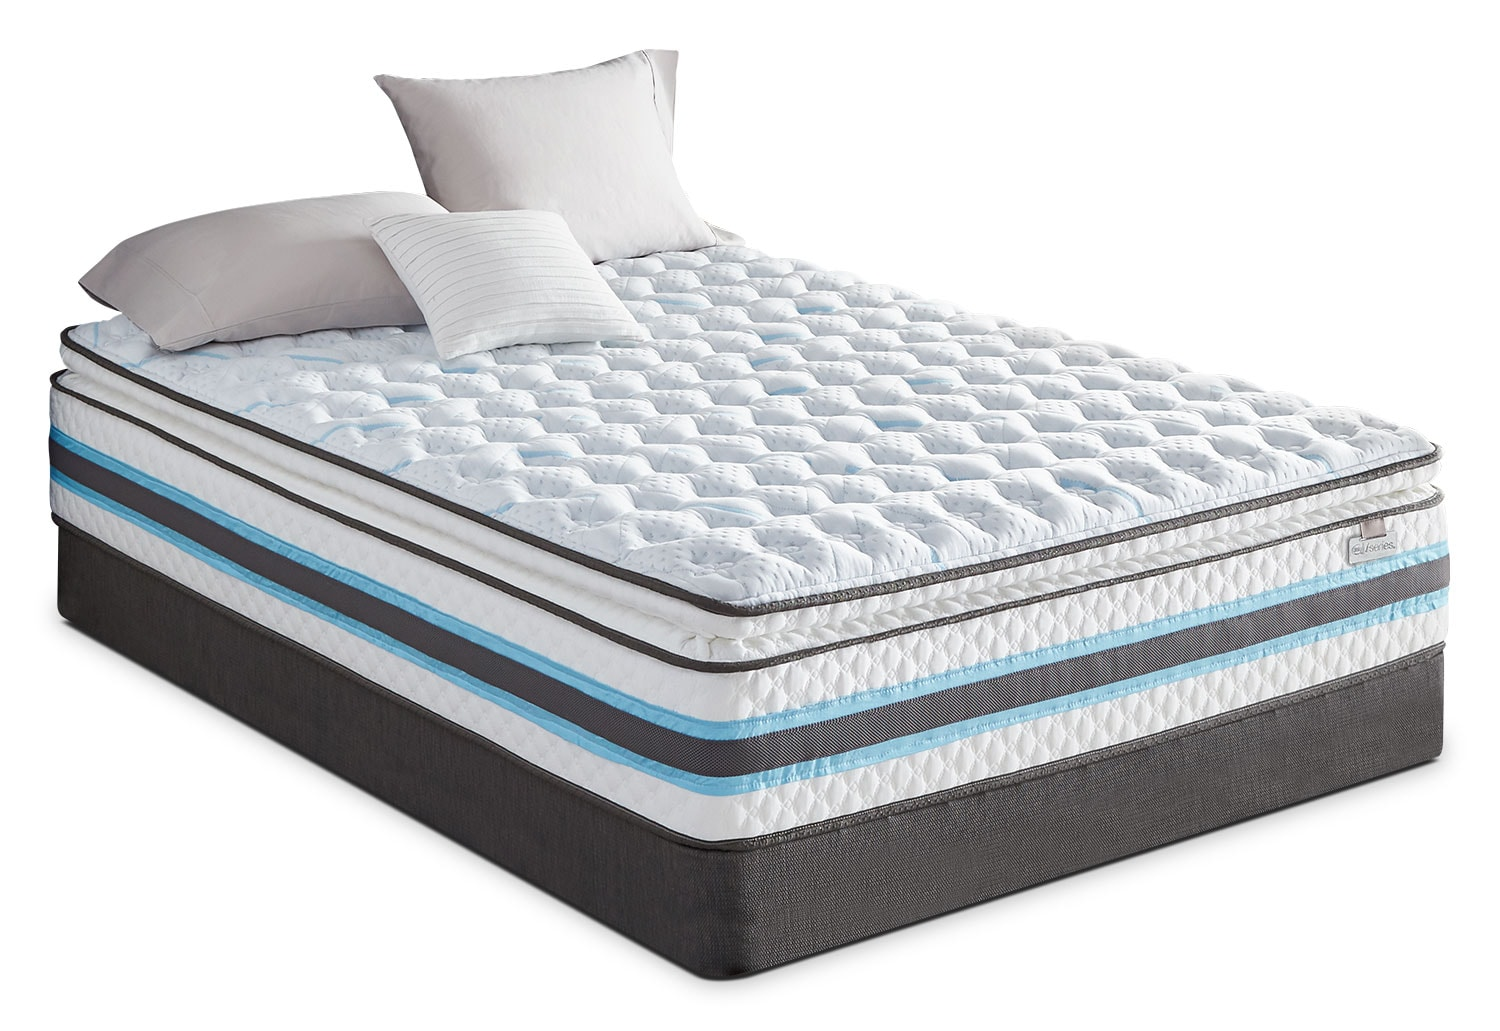 serta iseries breathtaking pillow top plush king mattress set united furniture warehouse